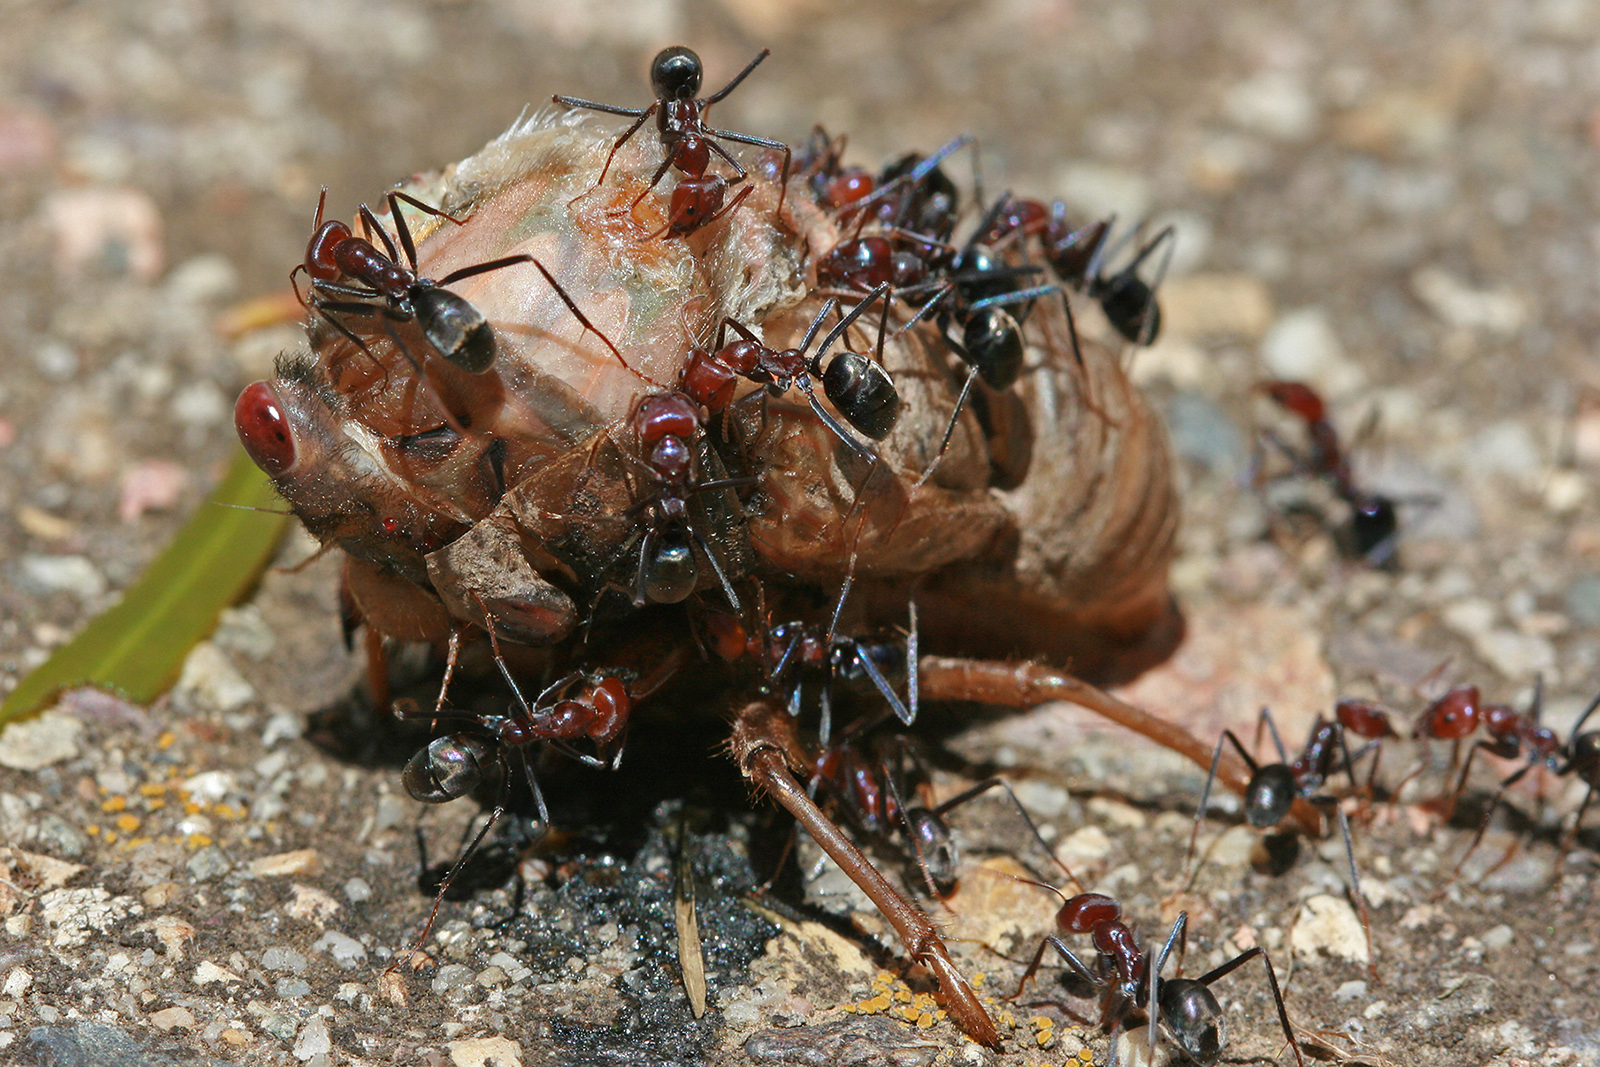 Meat-eater ants feeding on a cicada, social ants cooperate and collectively gather food